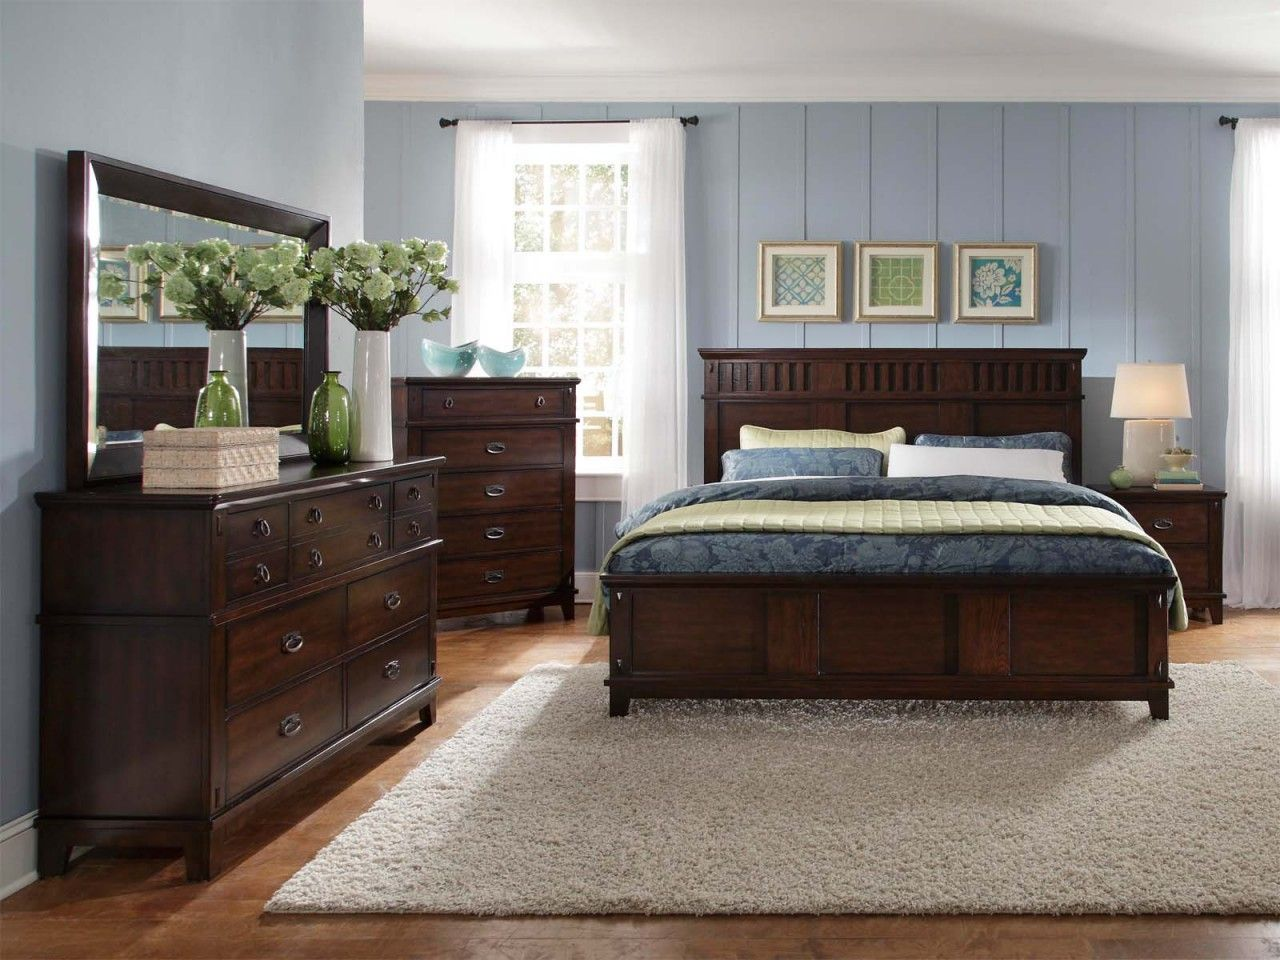 Schlafzimmer Mit Schwarzen Mobeln Brown Furniture Bedroom Wood Bedroom Sets Dark Wood Bedroom